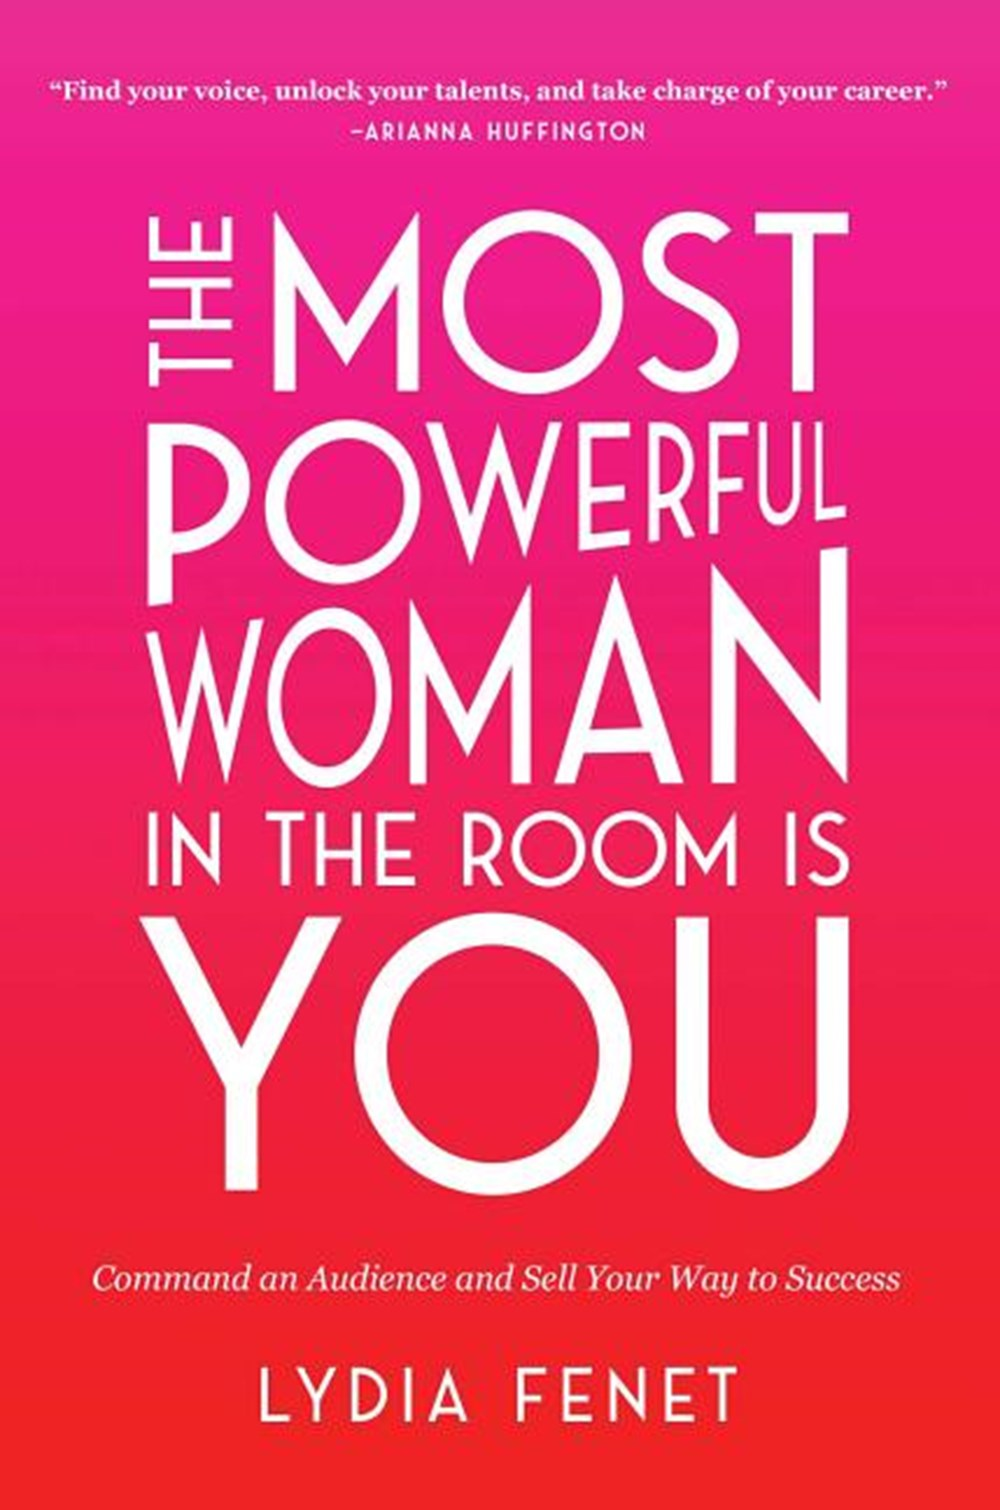 Most Powerful Woman in the Room Is You: Command an Audience and Sell Your Way to Success